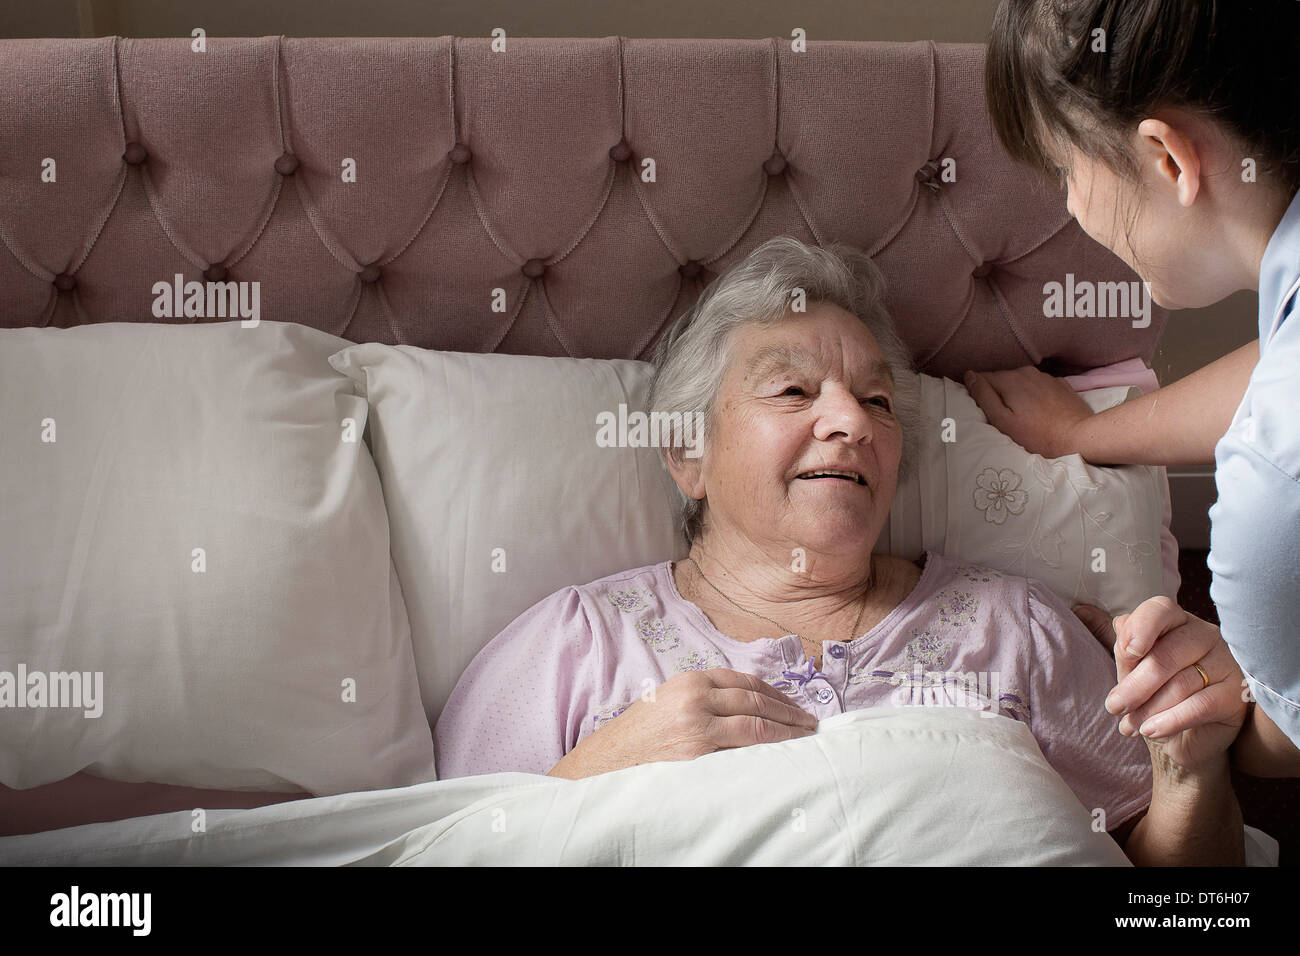 Personal care assistant chatting to senior woman in bed Stock Photo